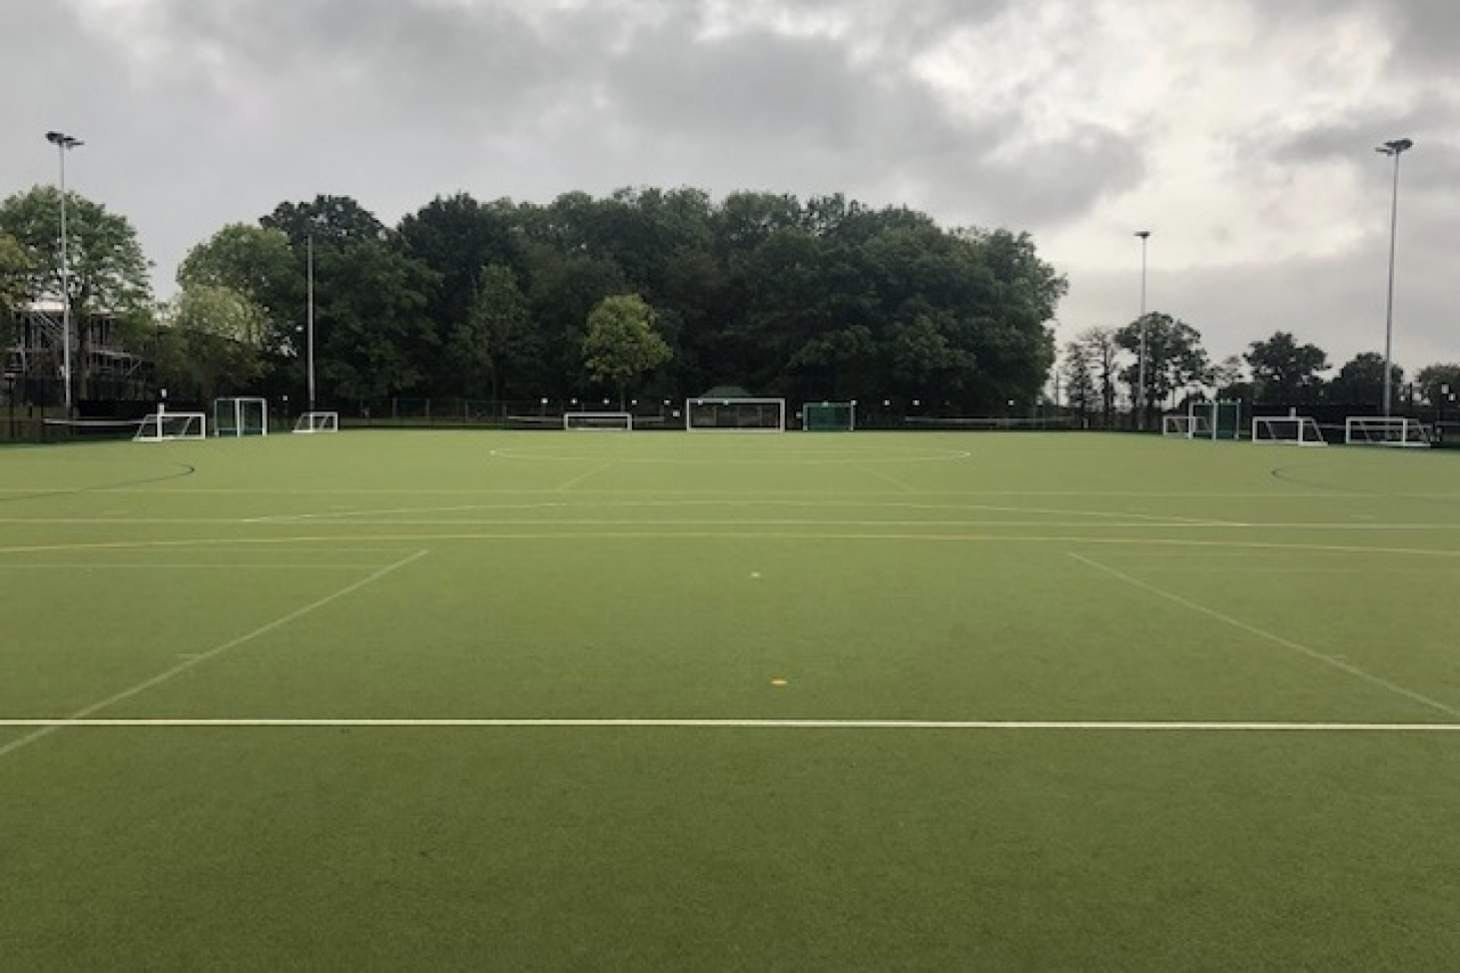 Beaumont School 11 a side | Astroturf football pitch